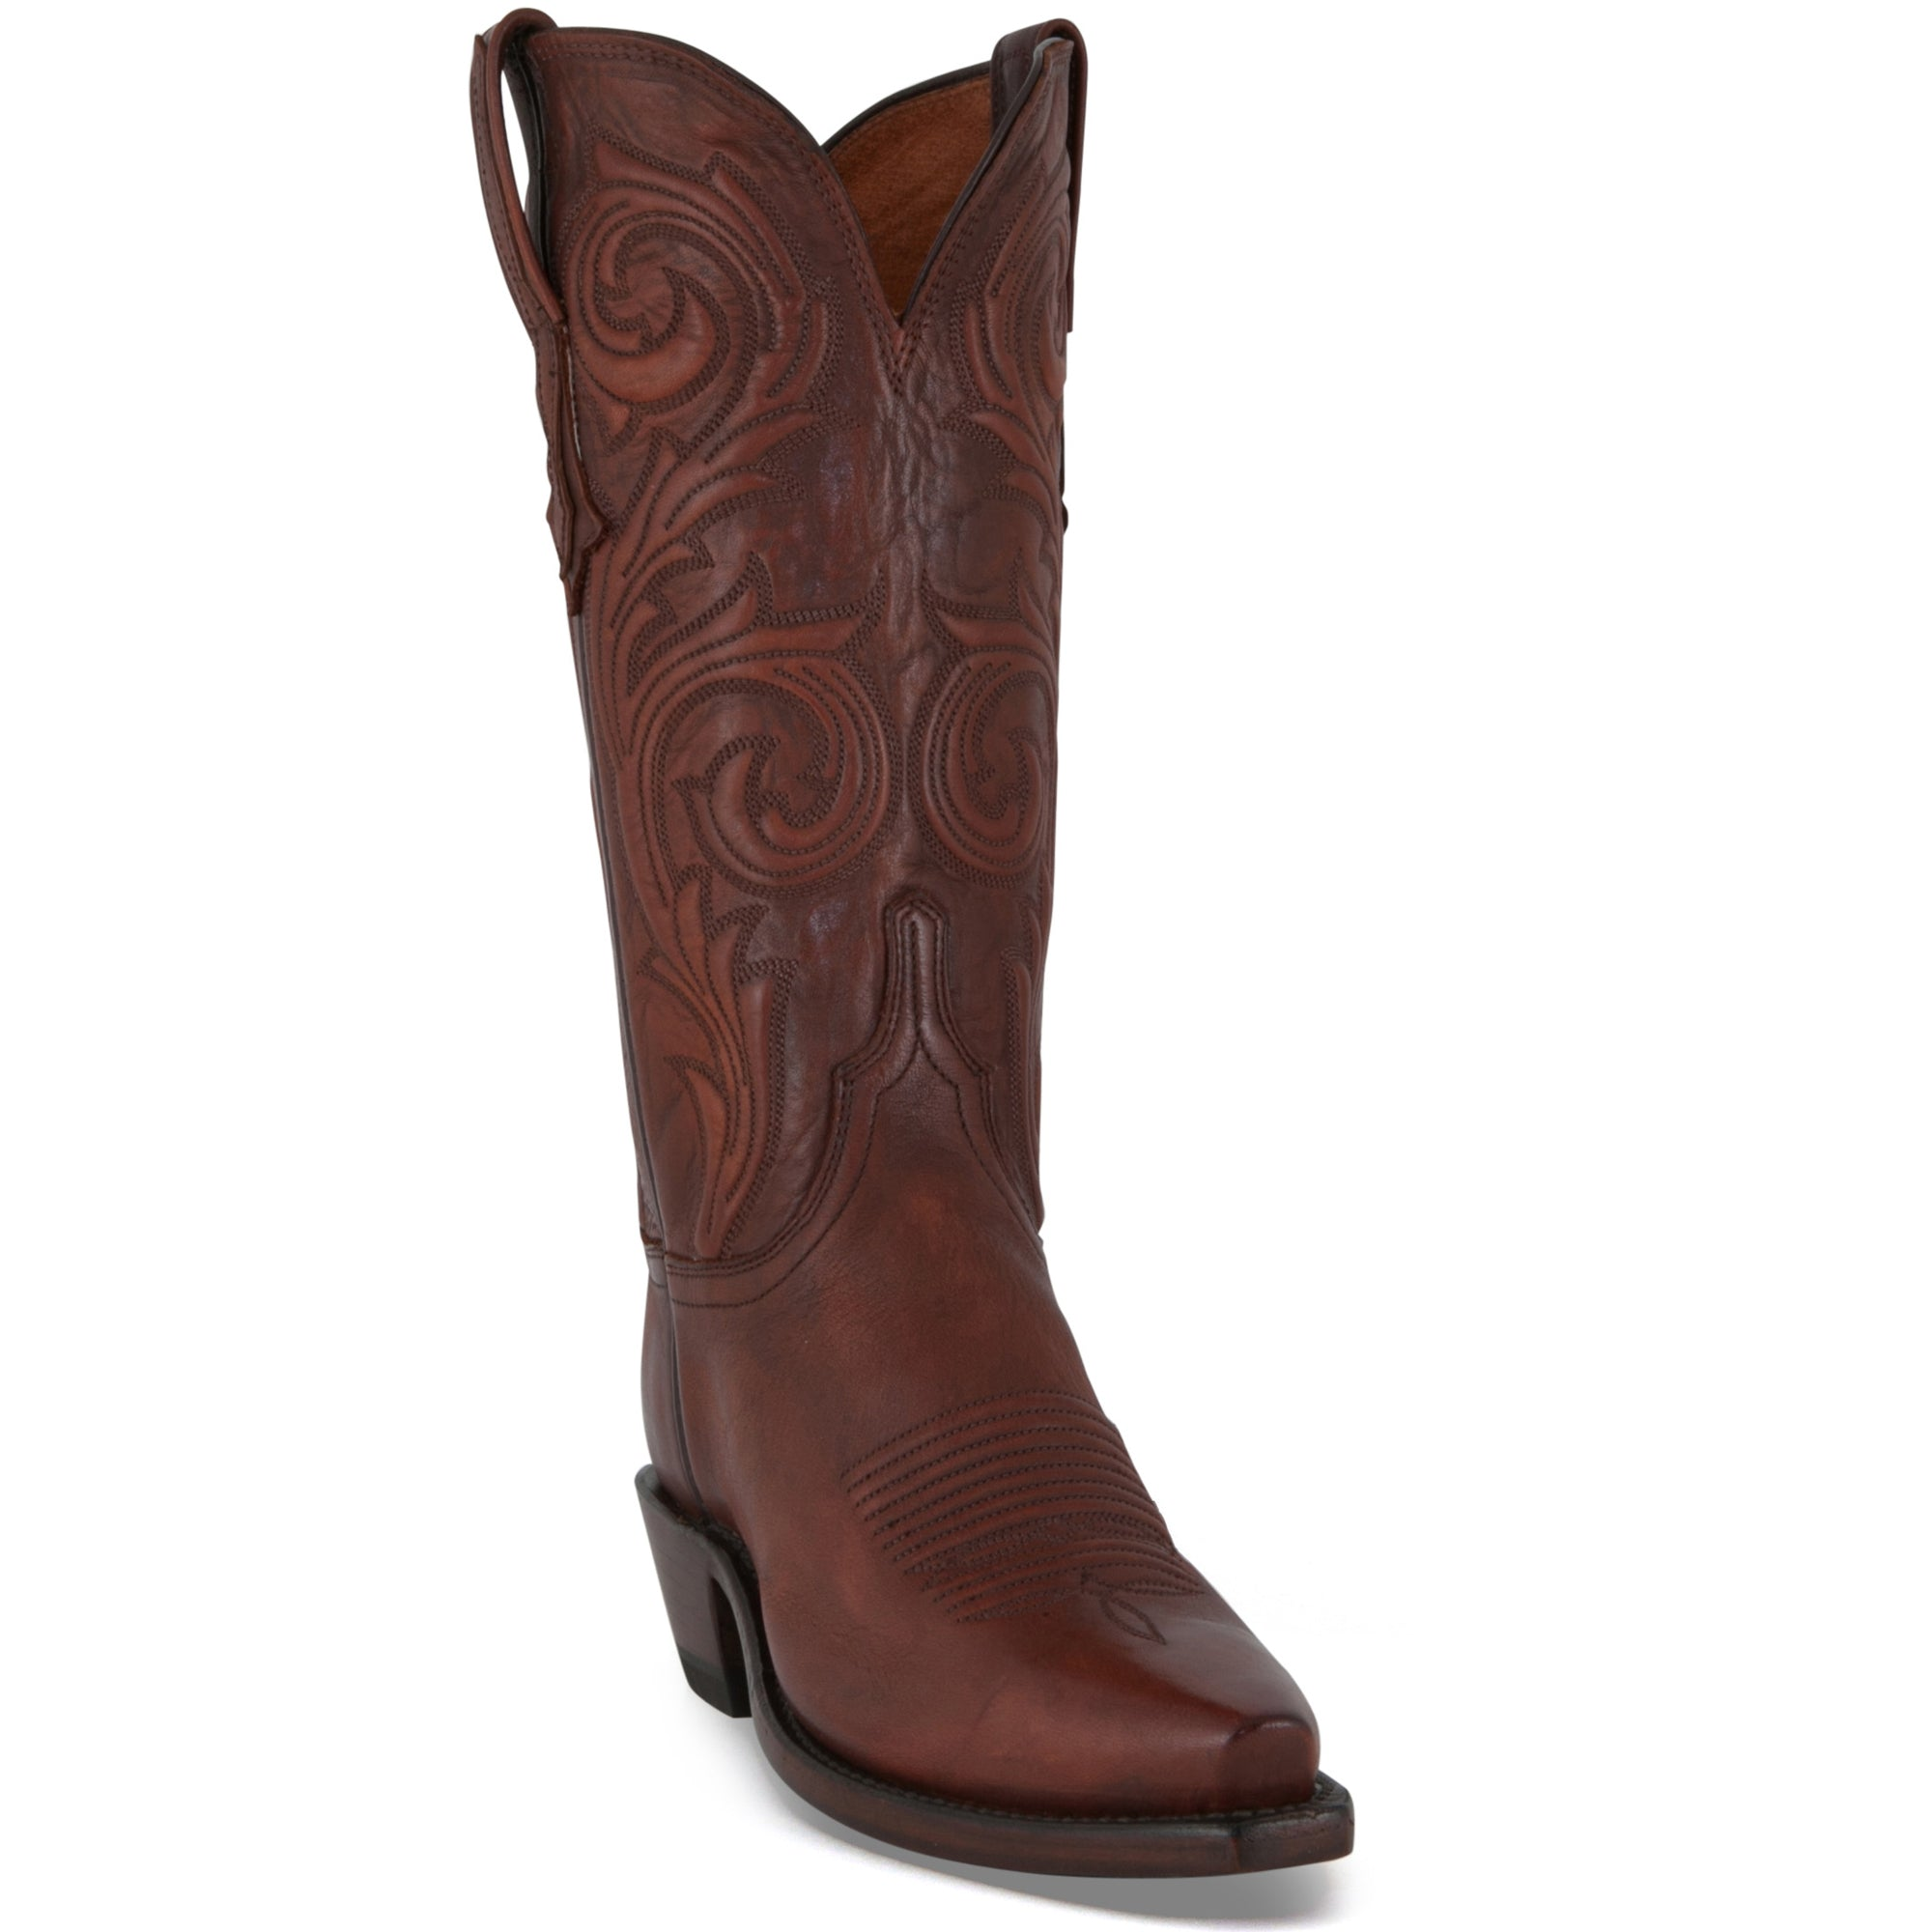 a6877e34b66 Women's Lucchese Boots Antique Rust #N4774-5/4 – Allens Boots